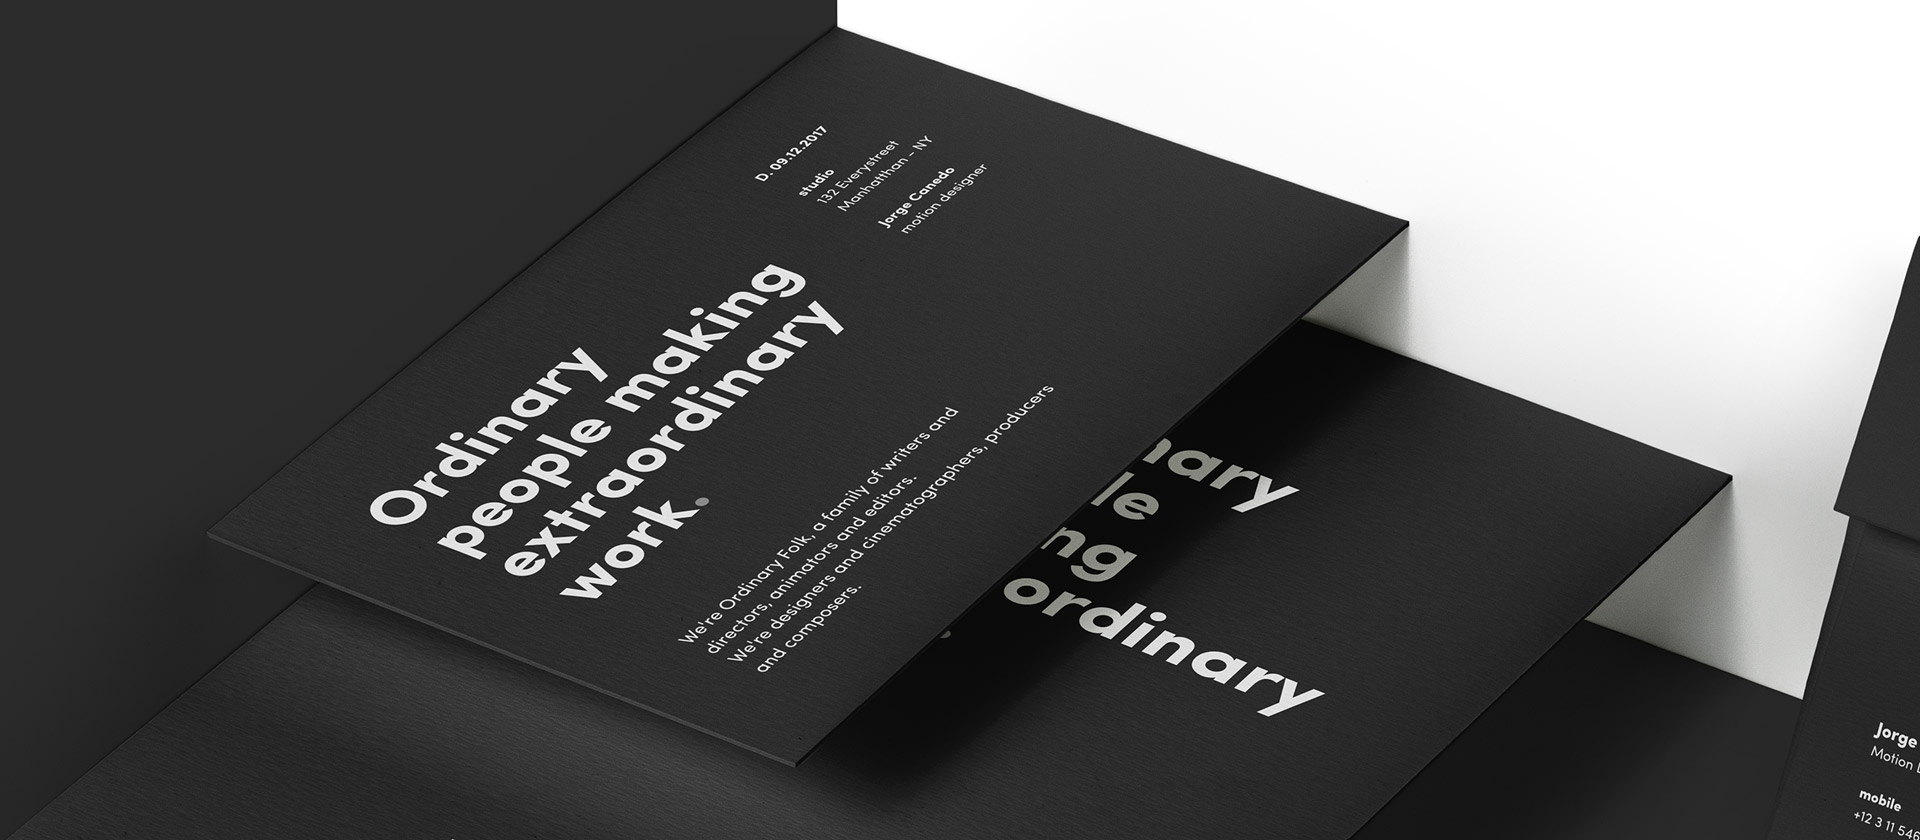 - Ordinary FolkBrand Identity & Web Design